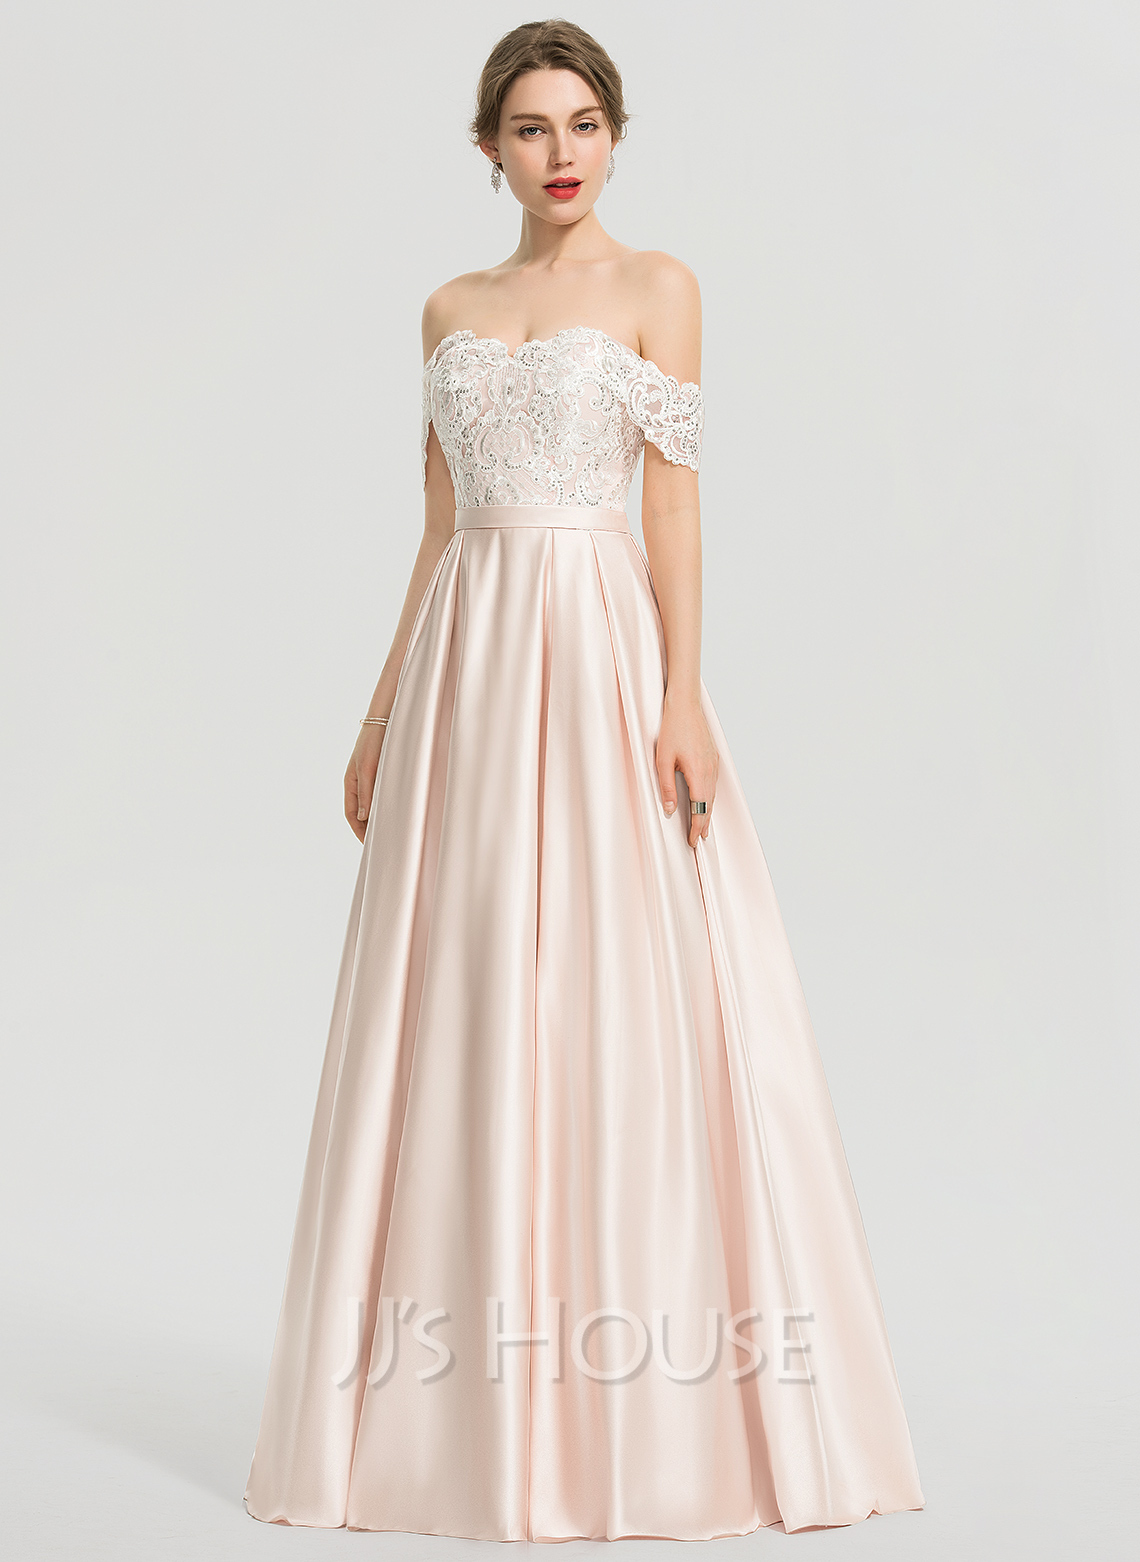 Ball-Gown/Princess Off-the-Shoulder Floor-Length Satin Wedding Dress With Sequins